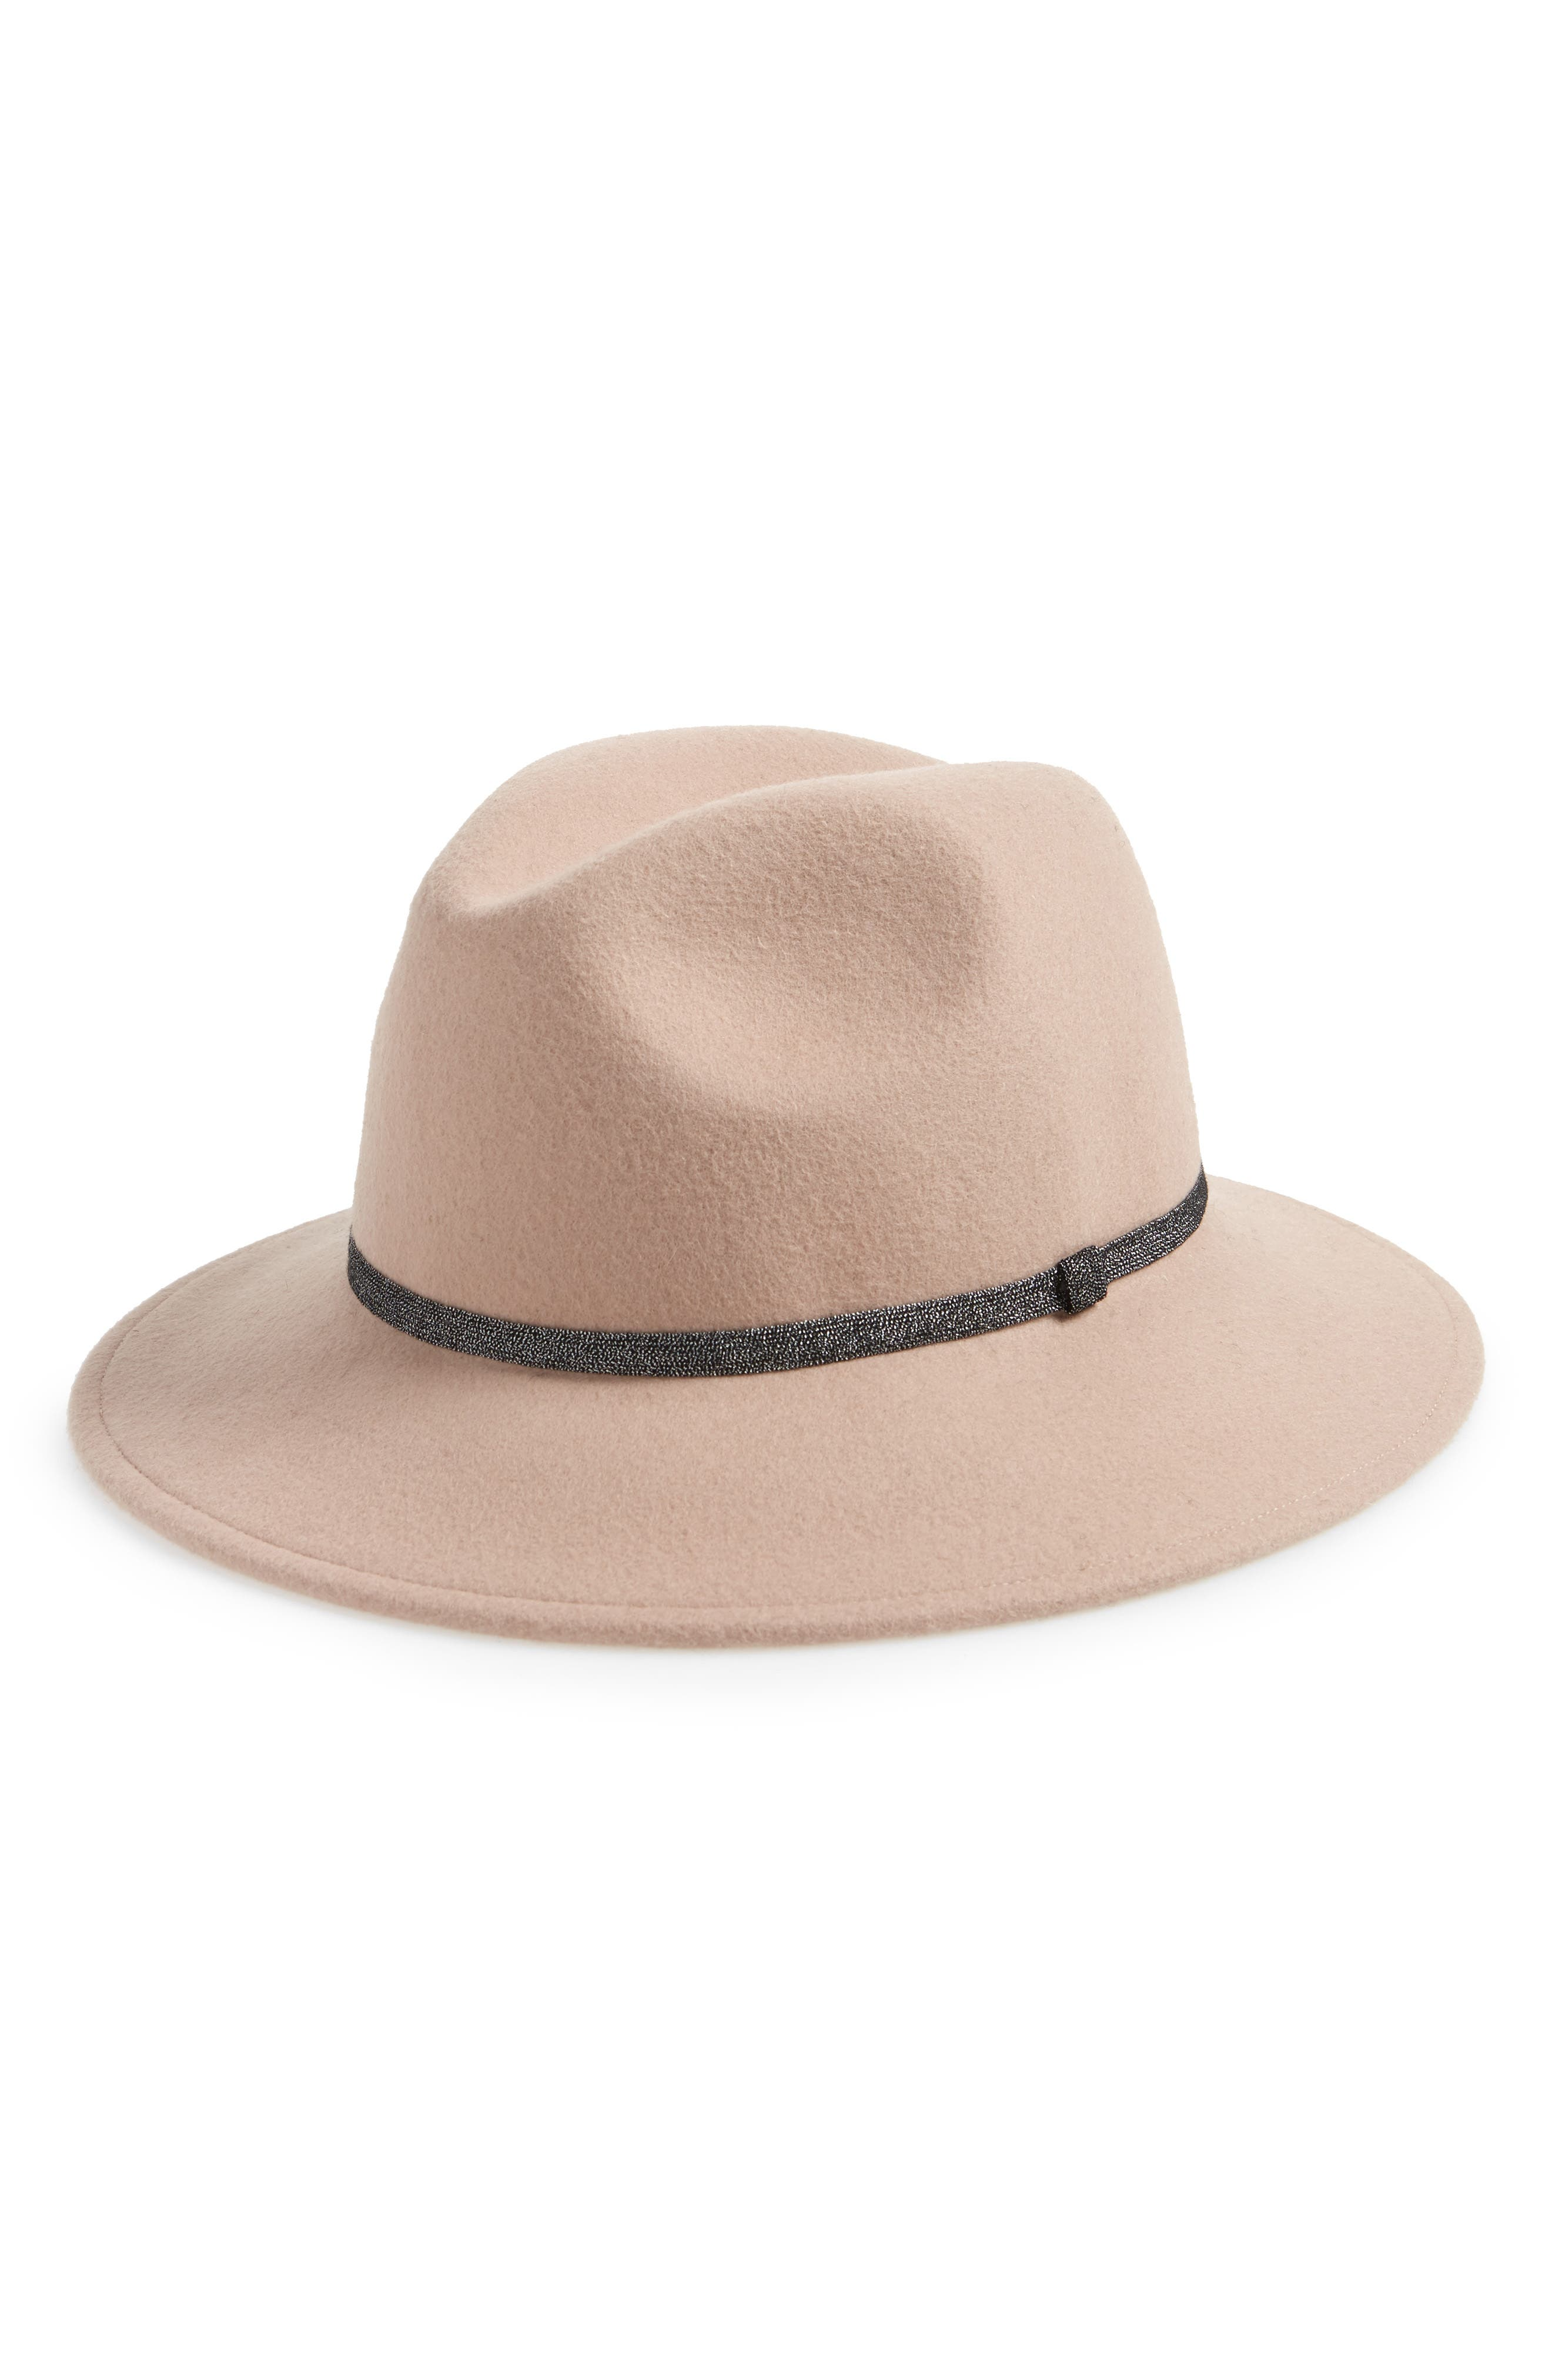 Metallic Band Wool Felt Panama Hat,                             Main thumbnail 1, color,                             TEA ROSE LIGHT